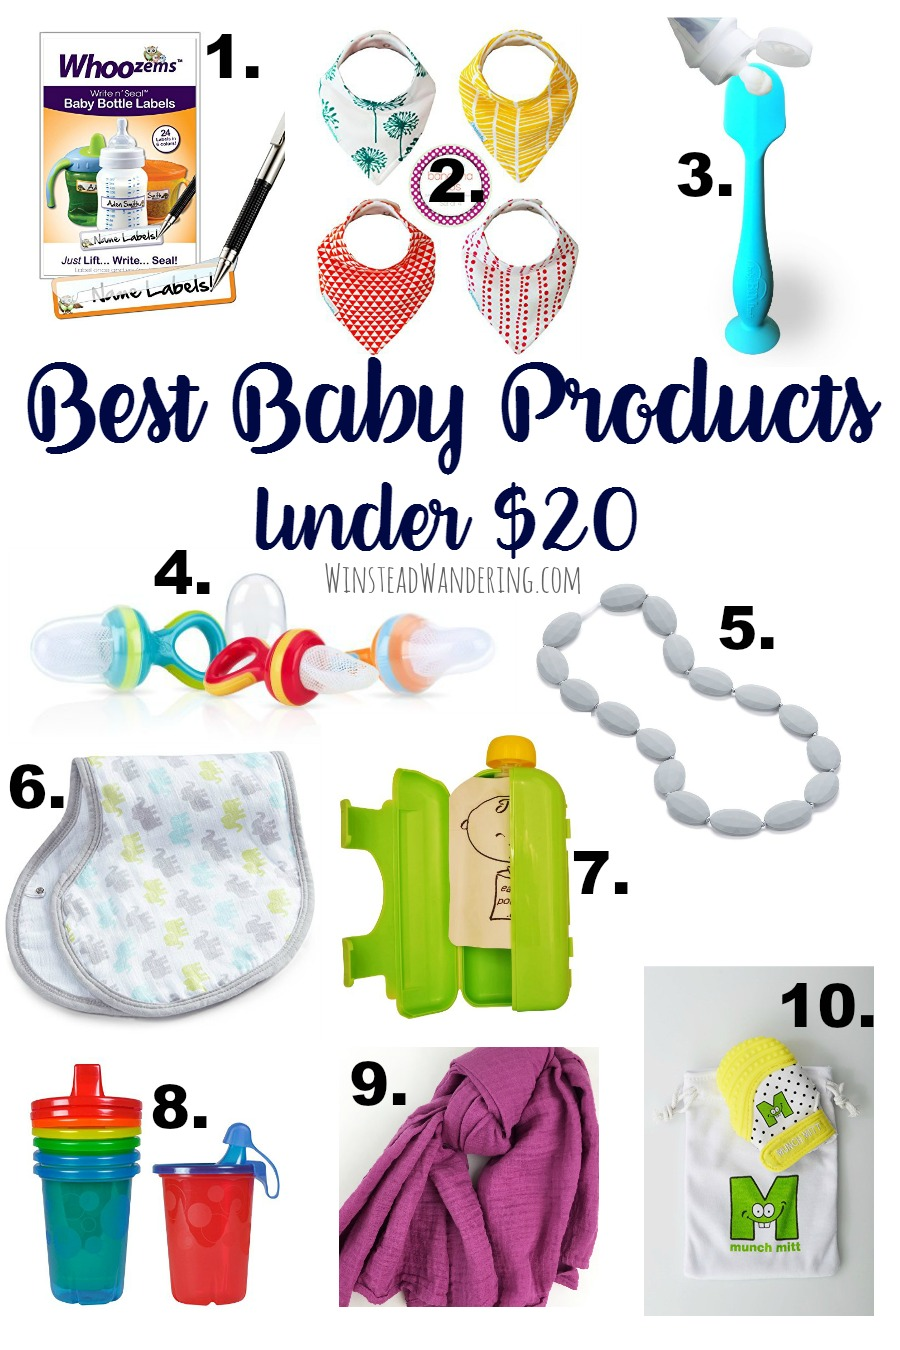 These are seriously the best baby products under $20. They're all mom-tested and approved, and guaranteed to make this parenting thing a whole lot easier.